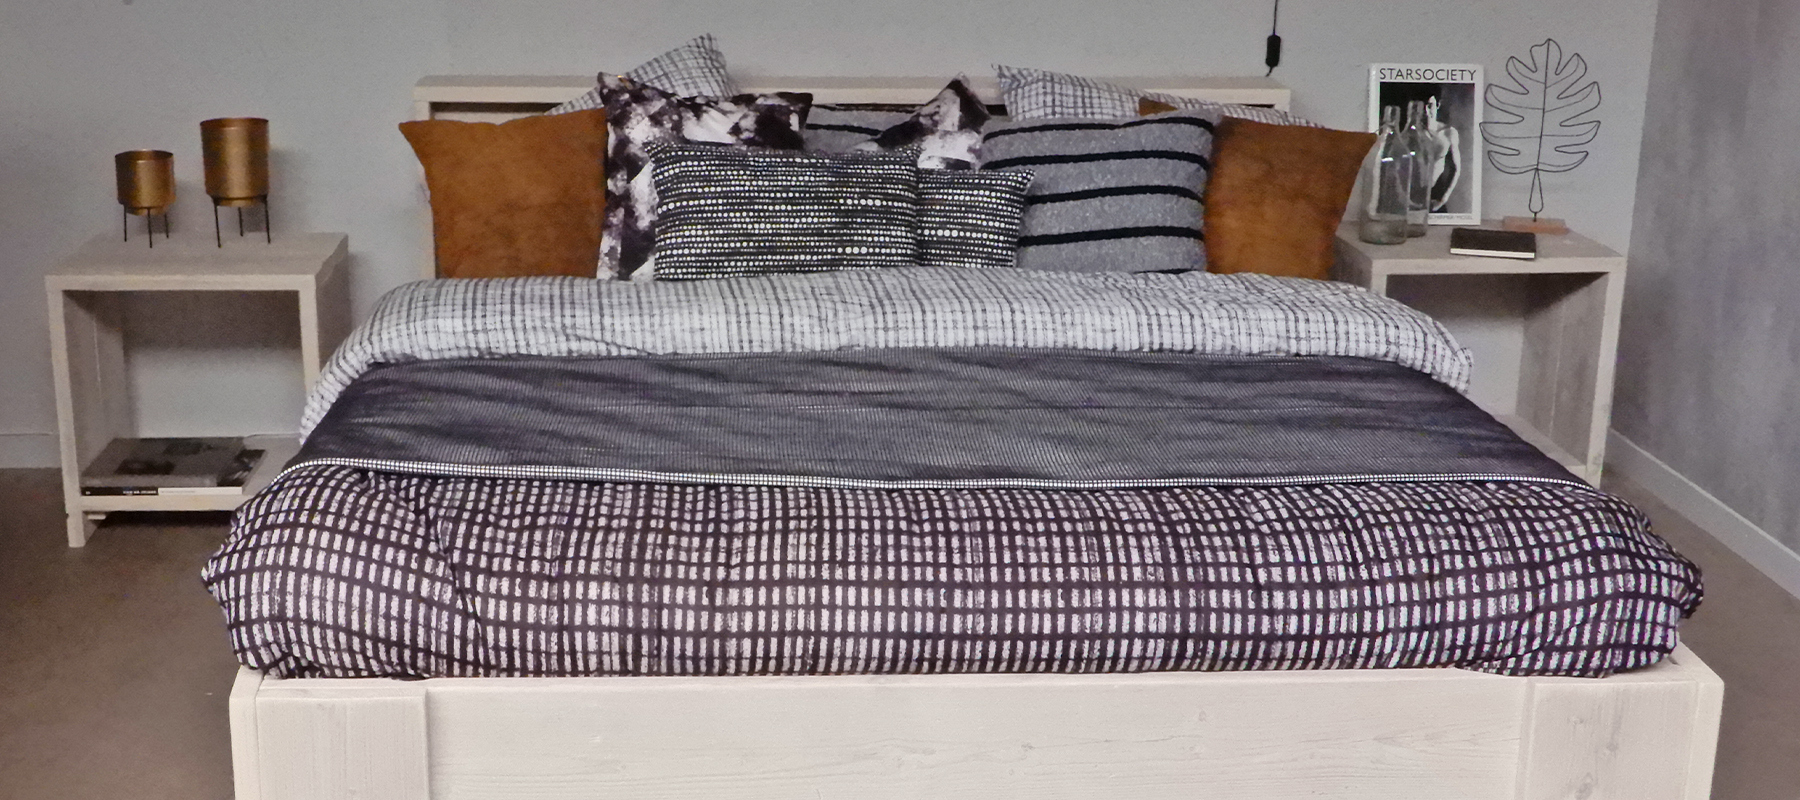 Livengo blog nachtkastjes - bed Simple en Nachtkastje Borna white wash